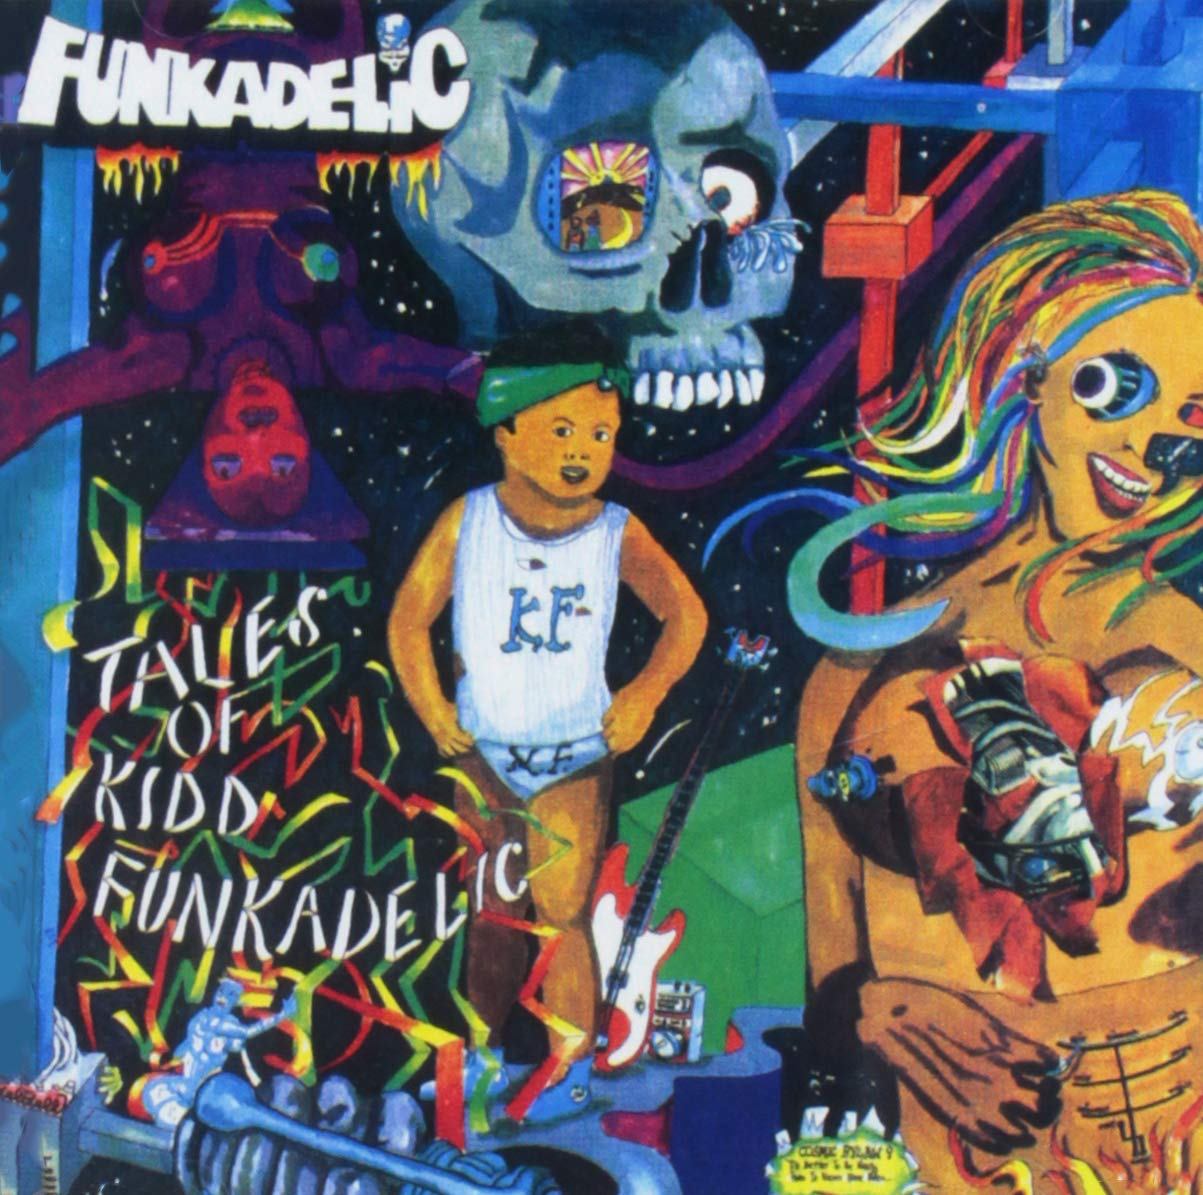 Tales of Kidd Funkadelic by Westbound Records Us